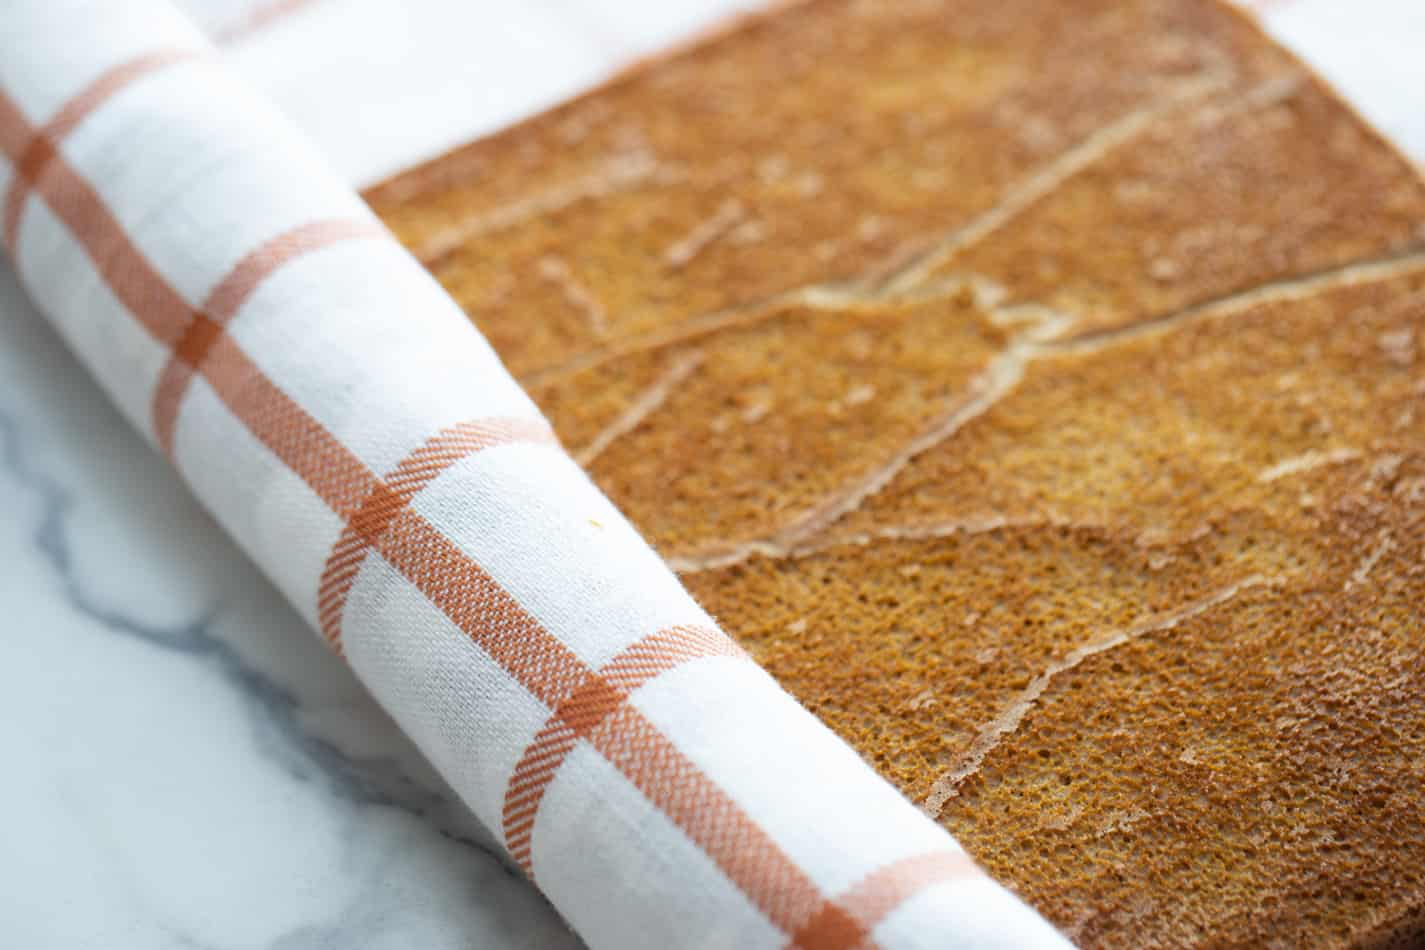 Pumpkin roll sponge cake partially rolled with a tea towel